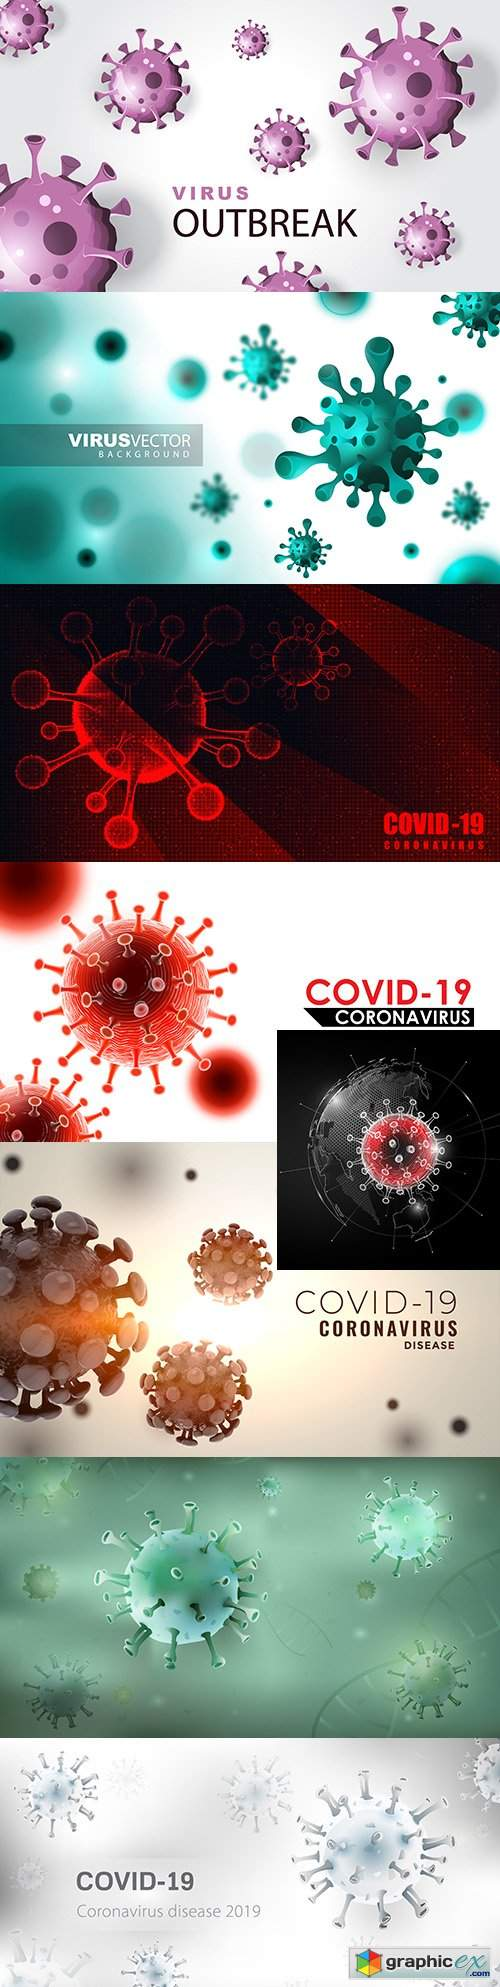 Coronavirus infection with 3d viral cell background